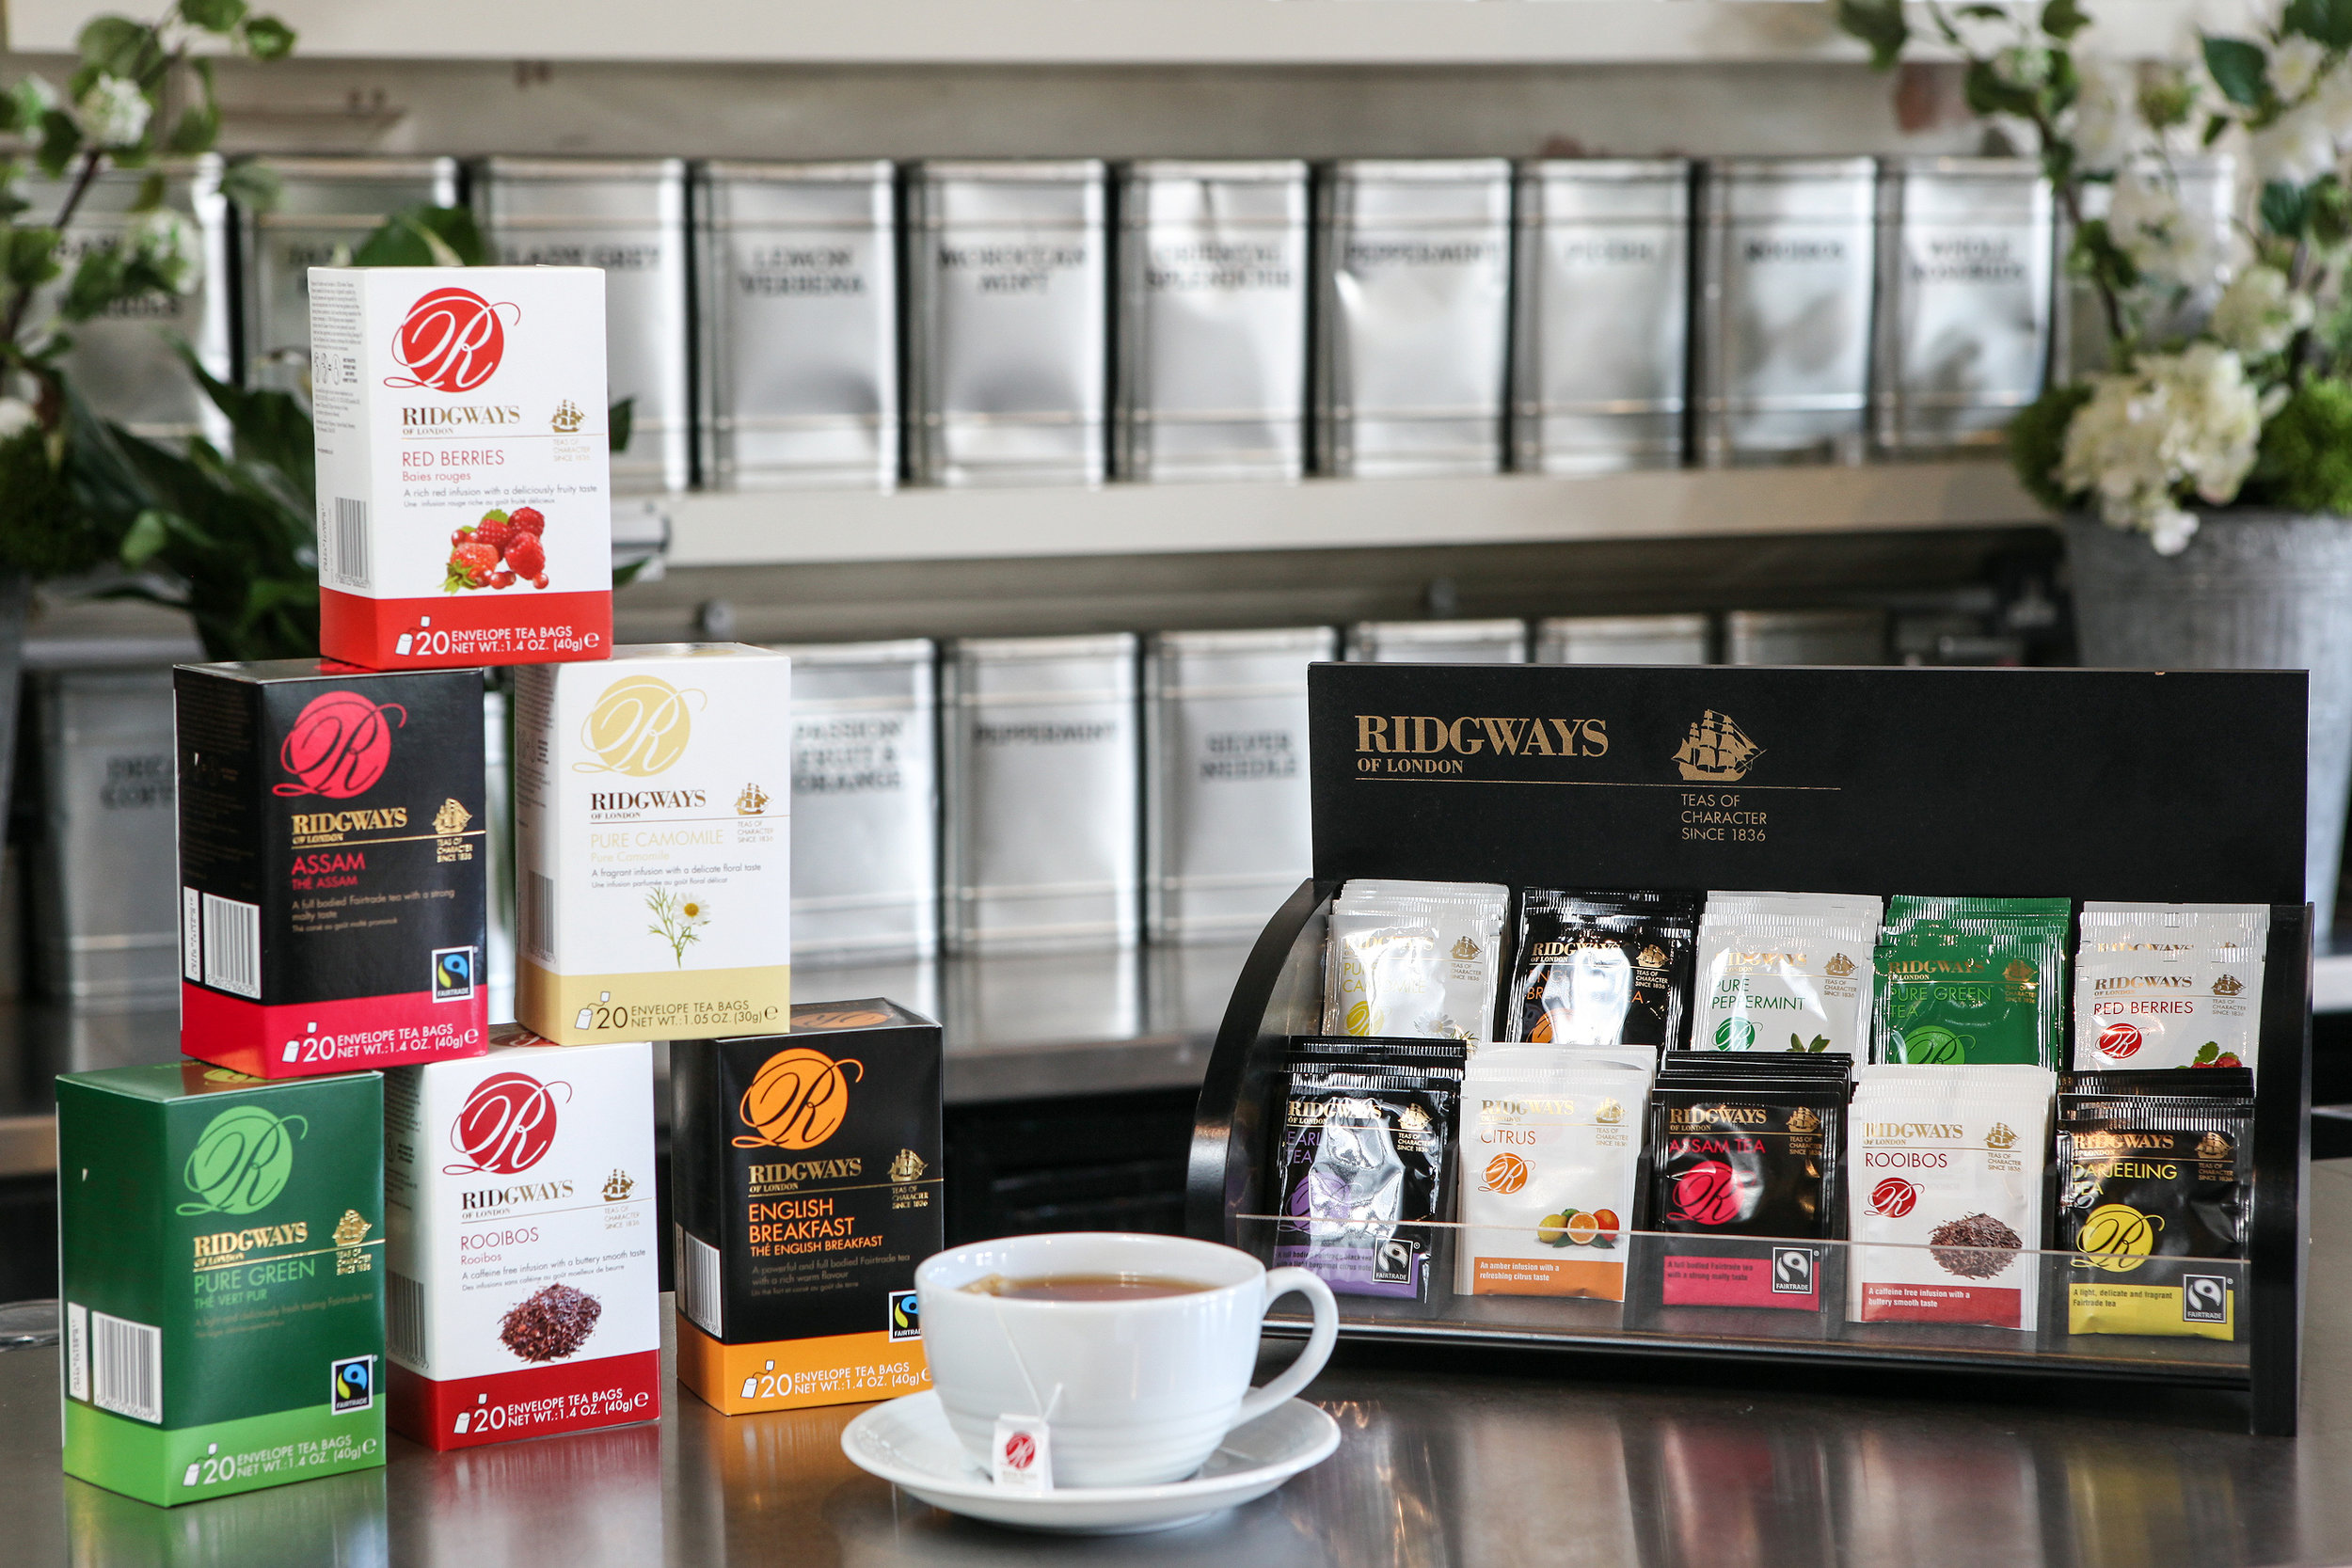 Ridgways Tea Range - Check out the variety of Ridgways Tea options also available from stock…